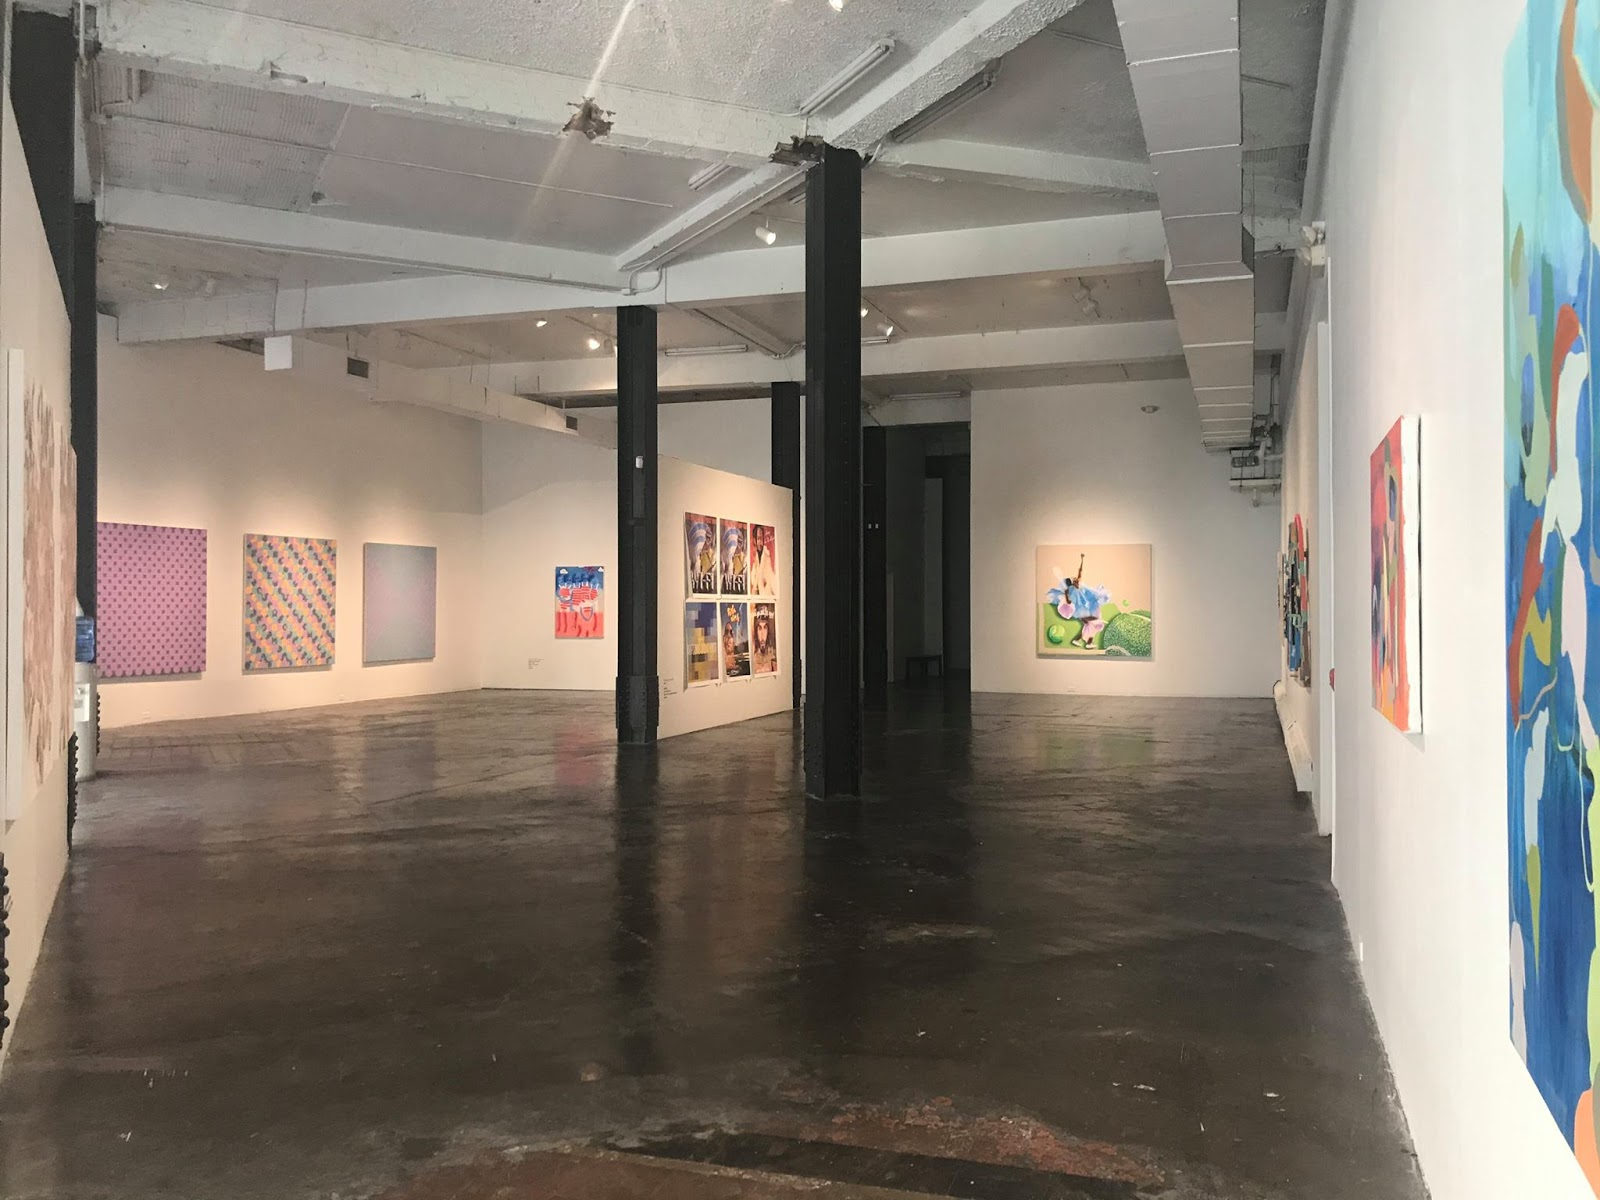 Pieces are featured at SPACE Gallery